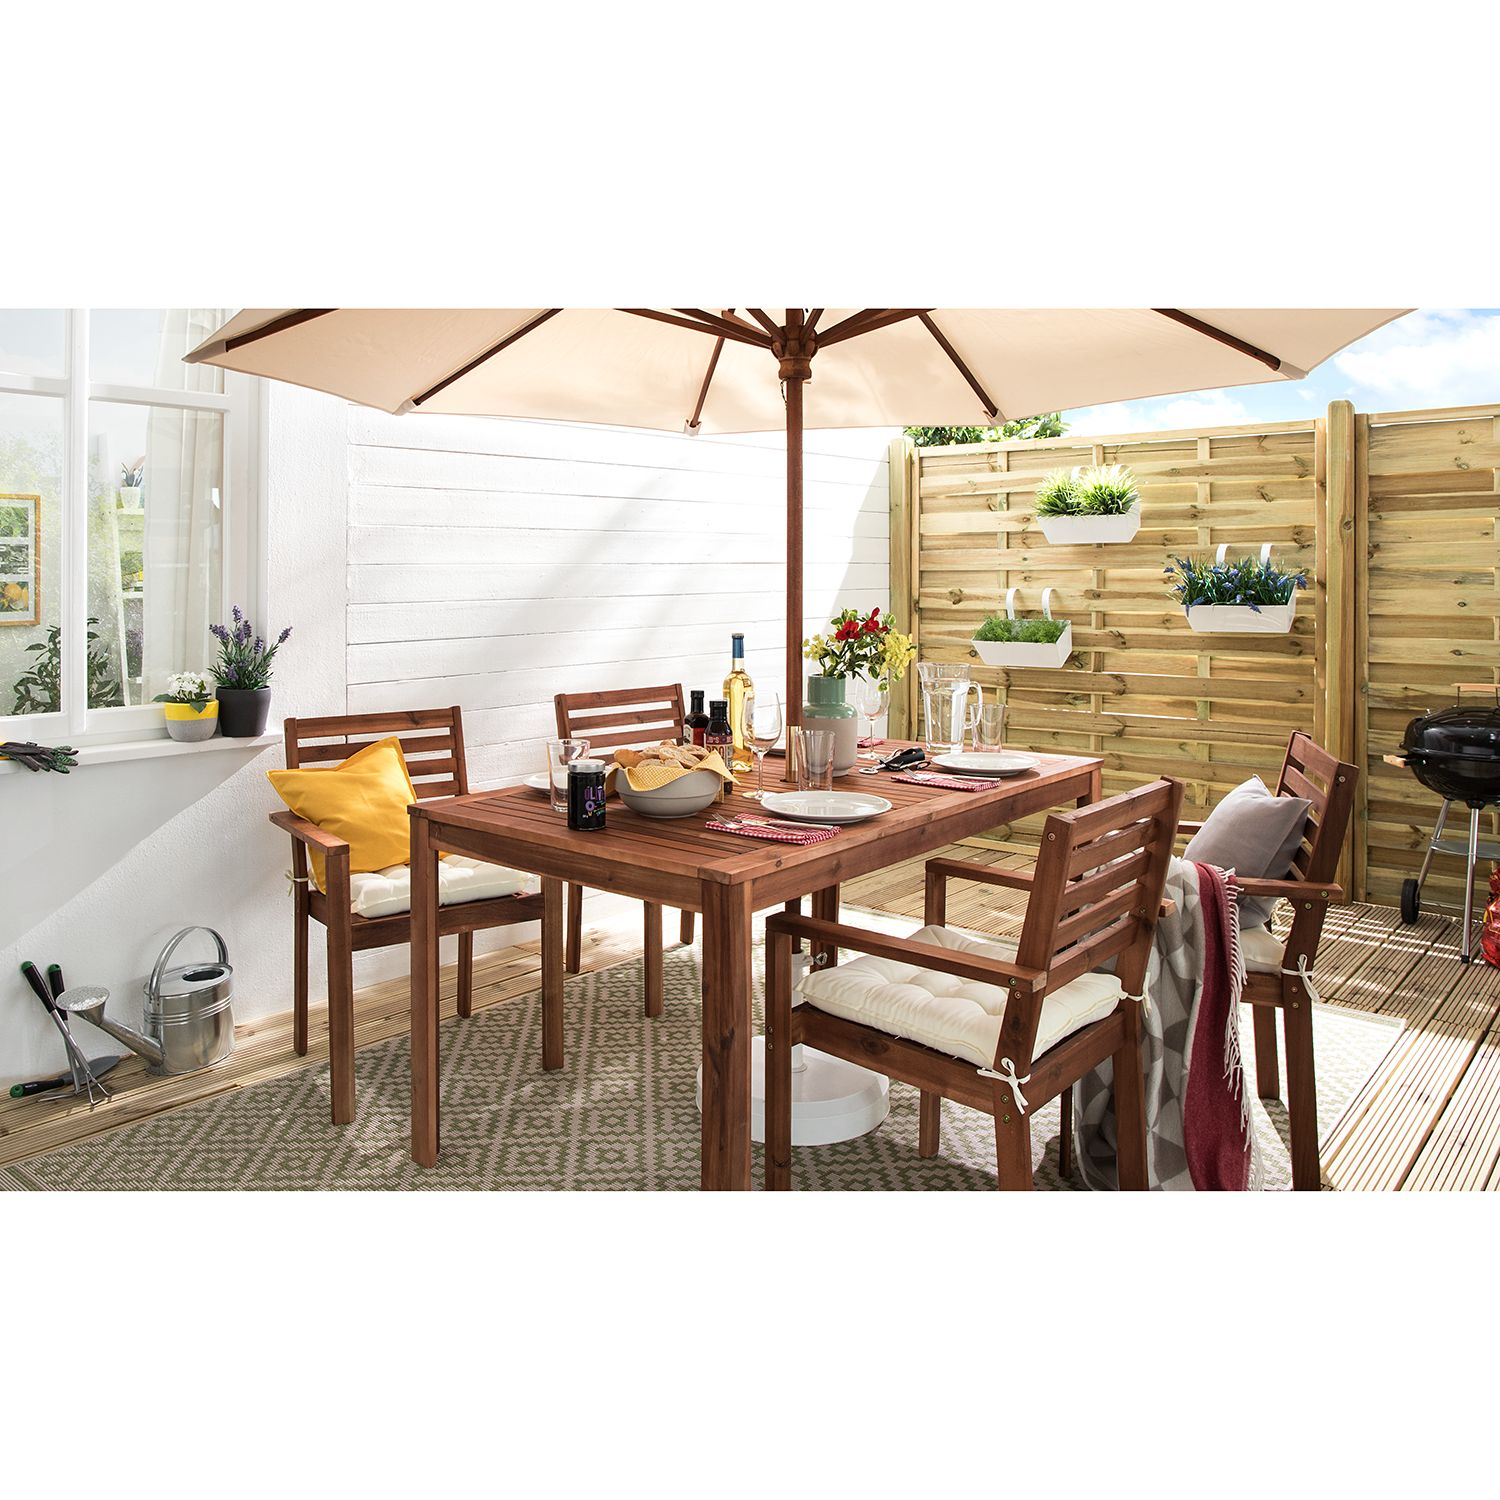 home24 In-/Outdoor-Teppich Raute